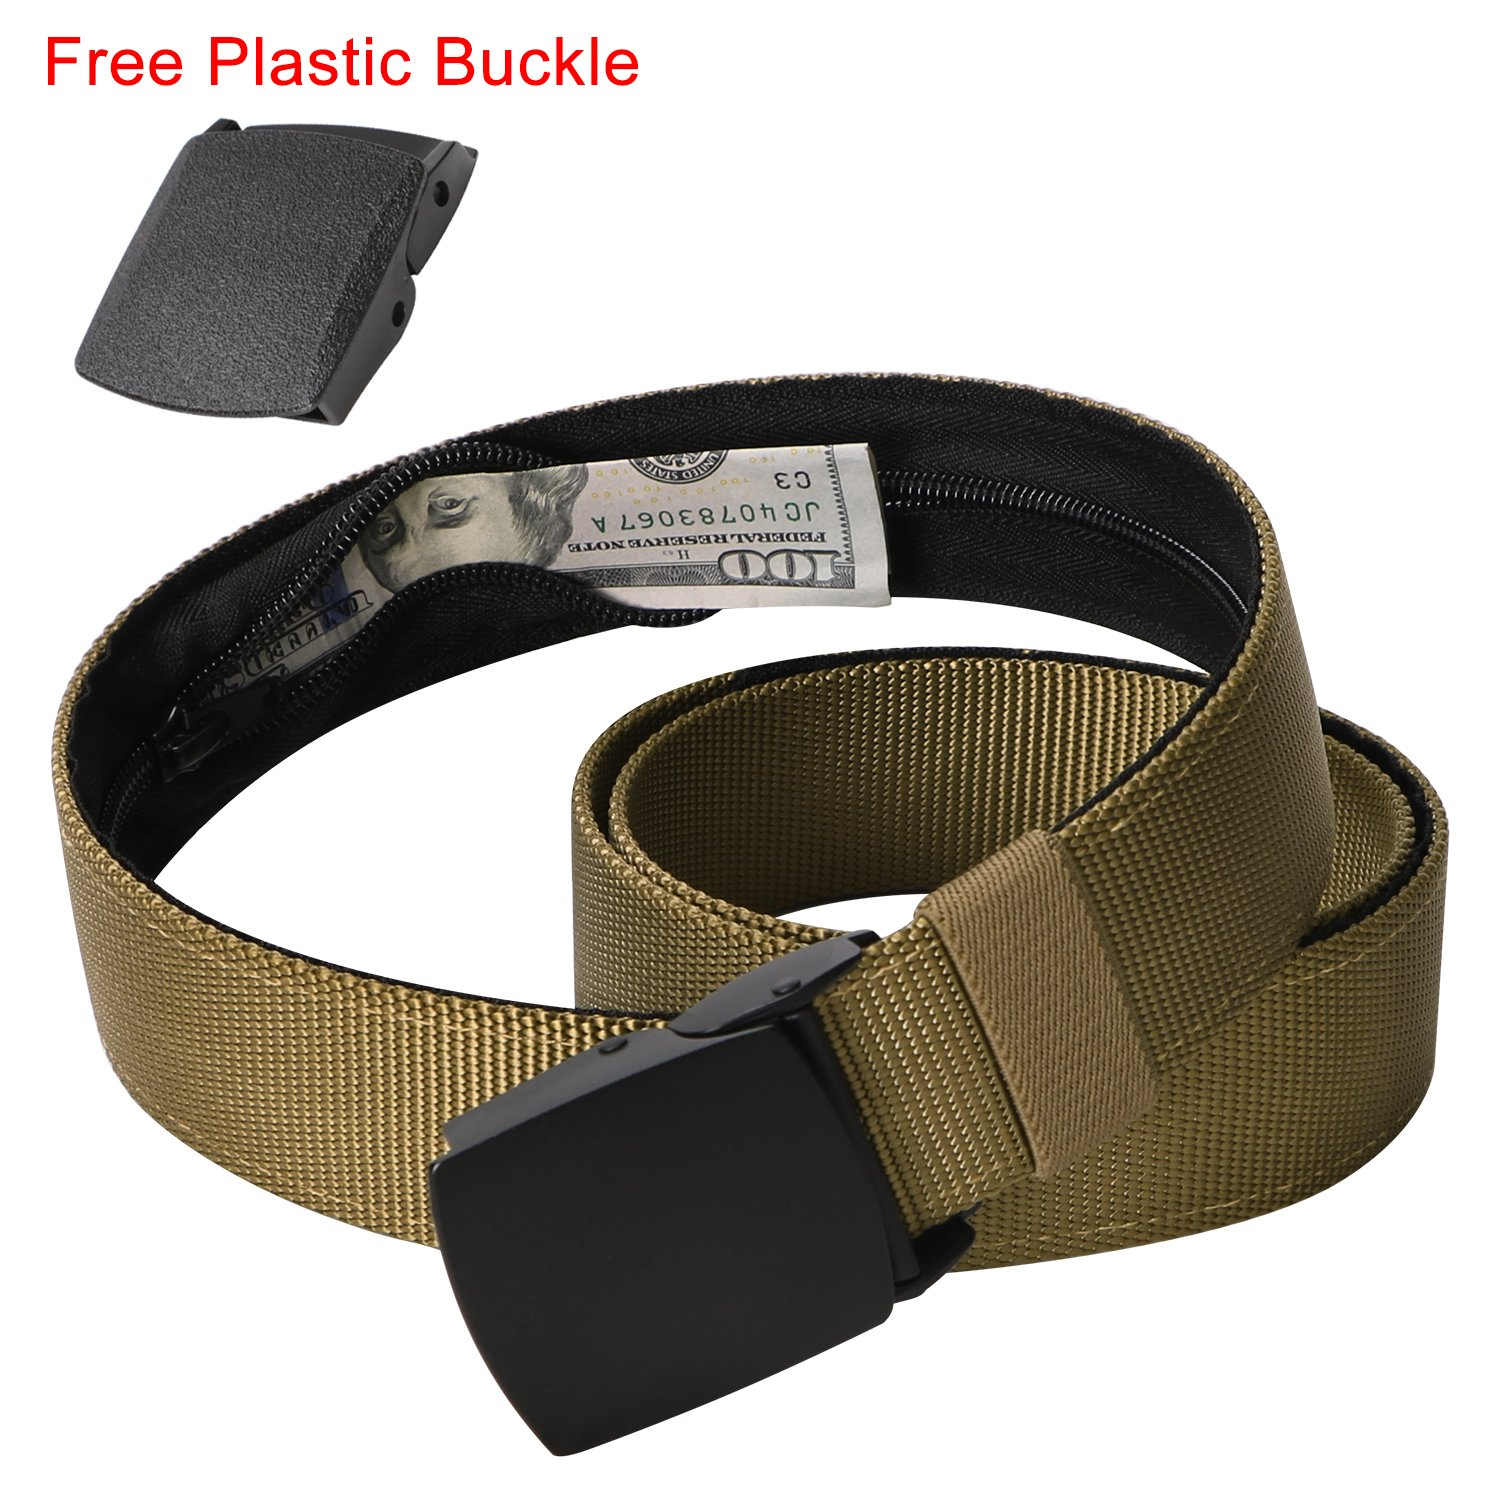 Coyote Brown Nylon Belt with Hidden Money Pocket, Travel Money Belt Wallet Pouch with Alloy Metal Buckle